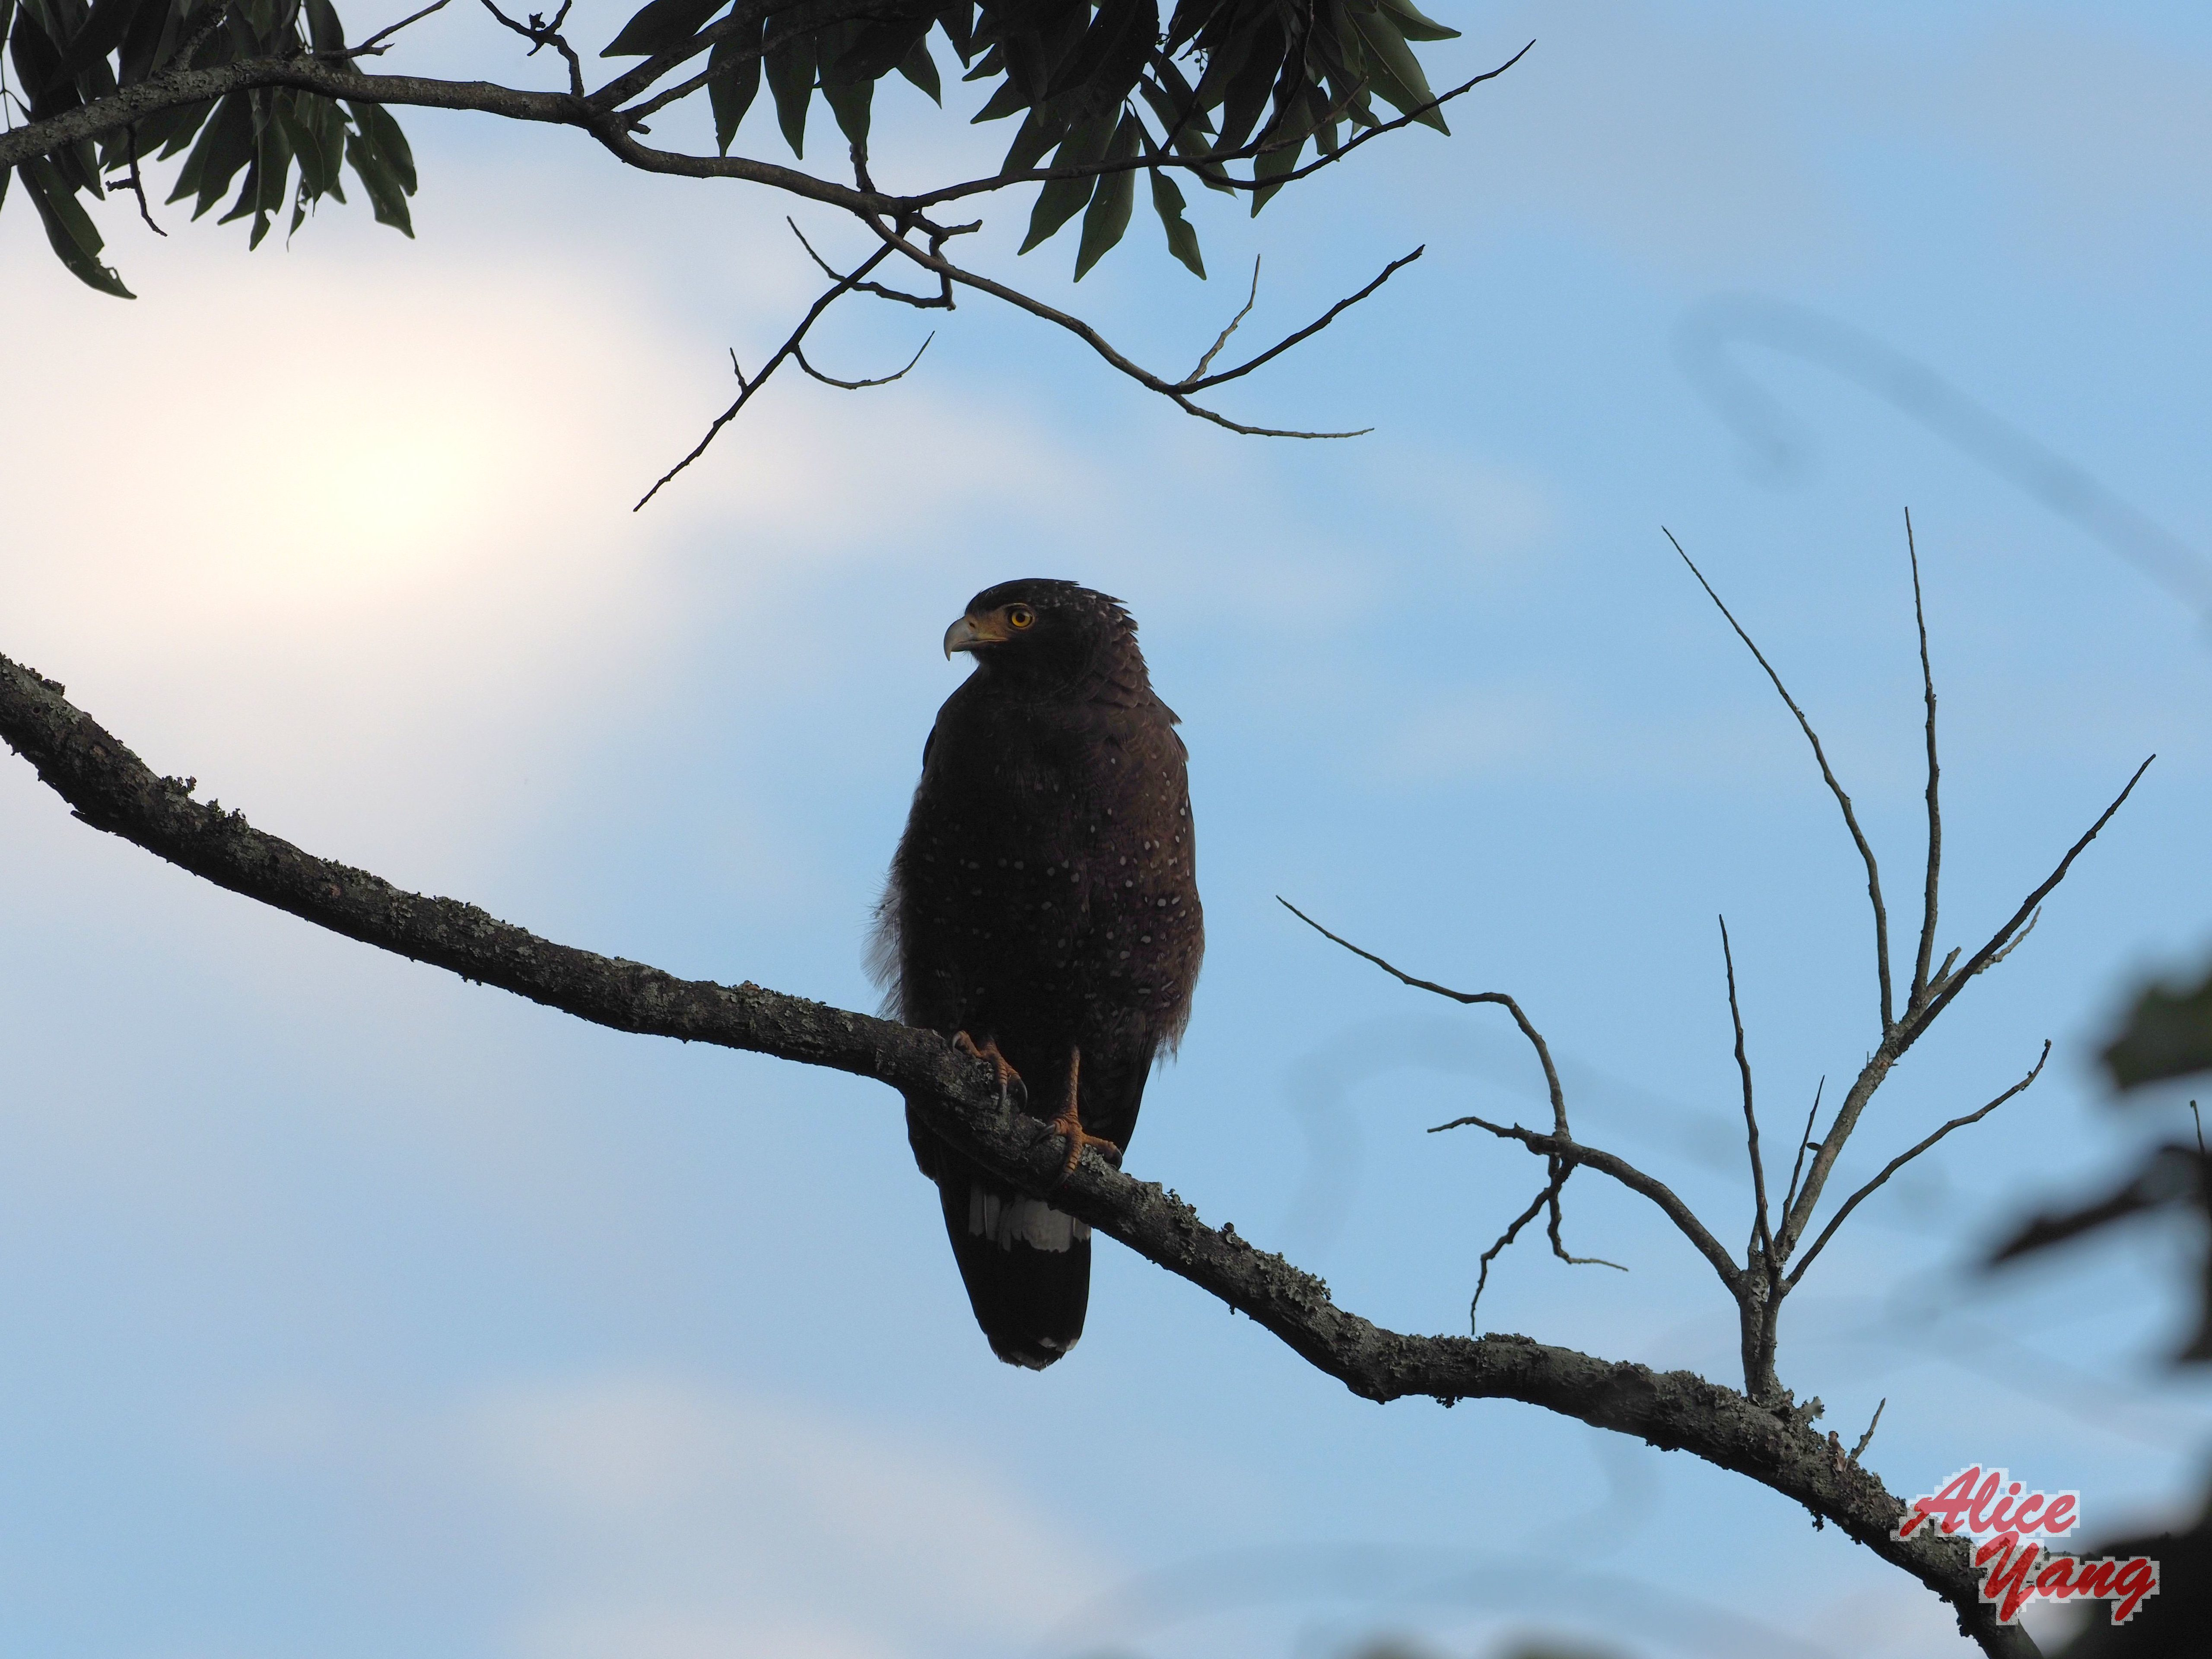 153120 download wallpaper Animals, Bird, Predator, Branch, Sky screensavers and pictures for free